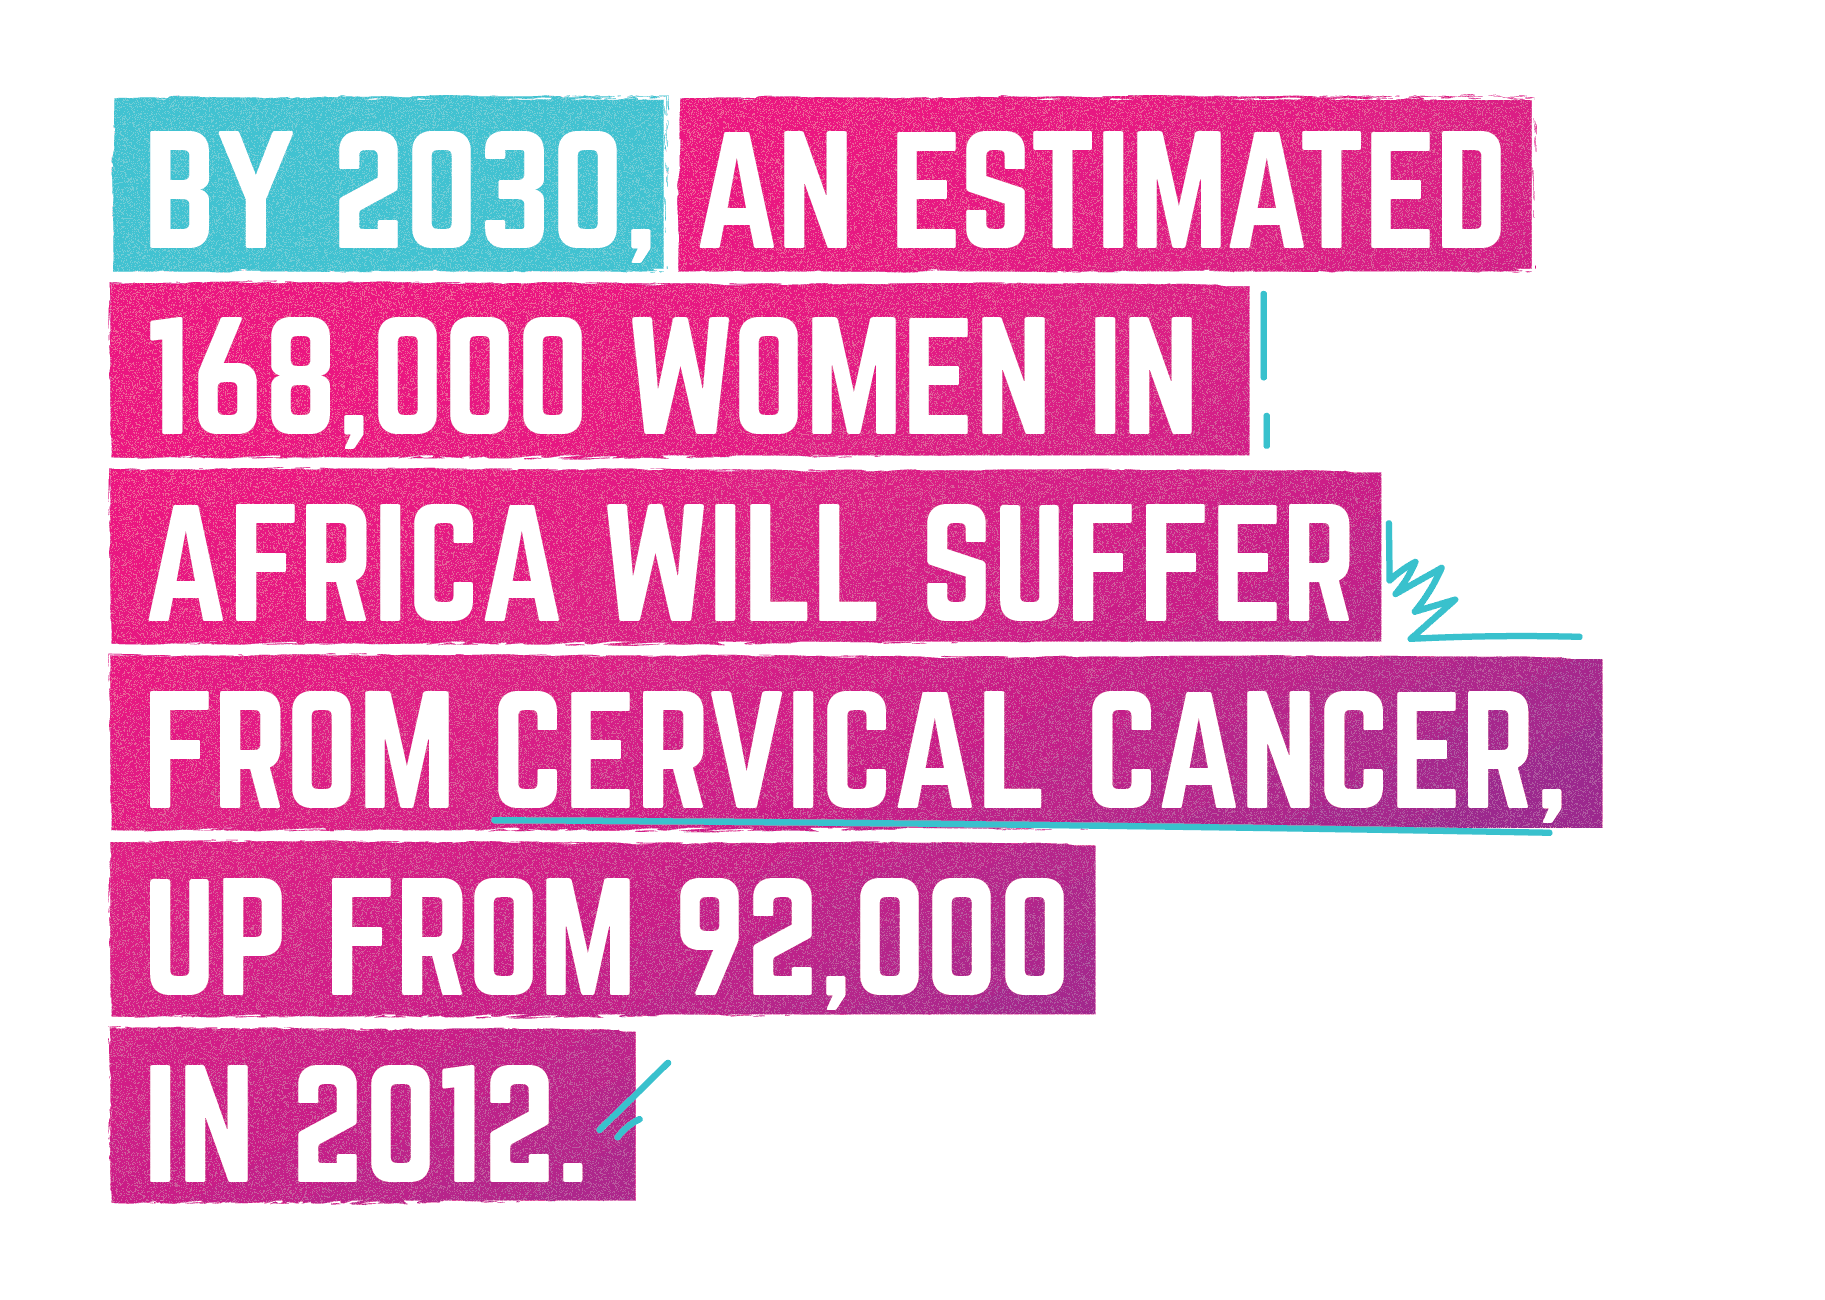 By 2030, an estimated 168,000 women in Africa will suffer from cervical cancer, up from 92,000 in 2012.